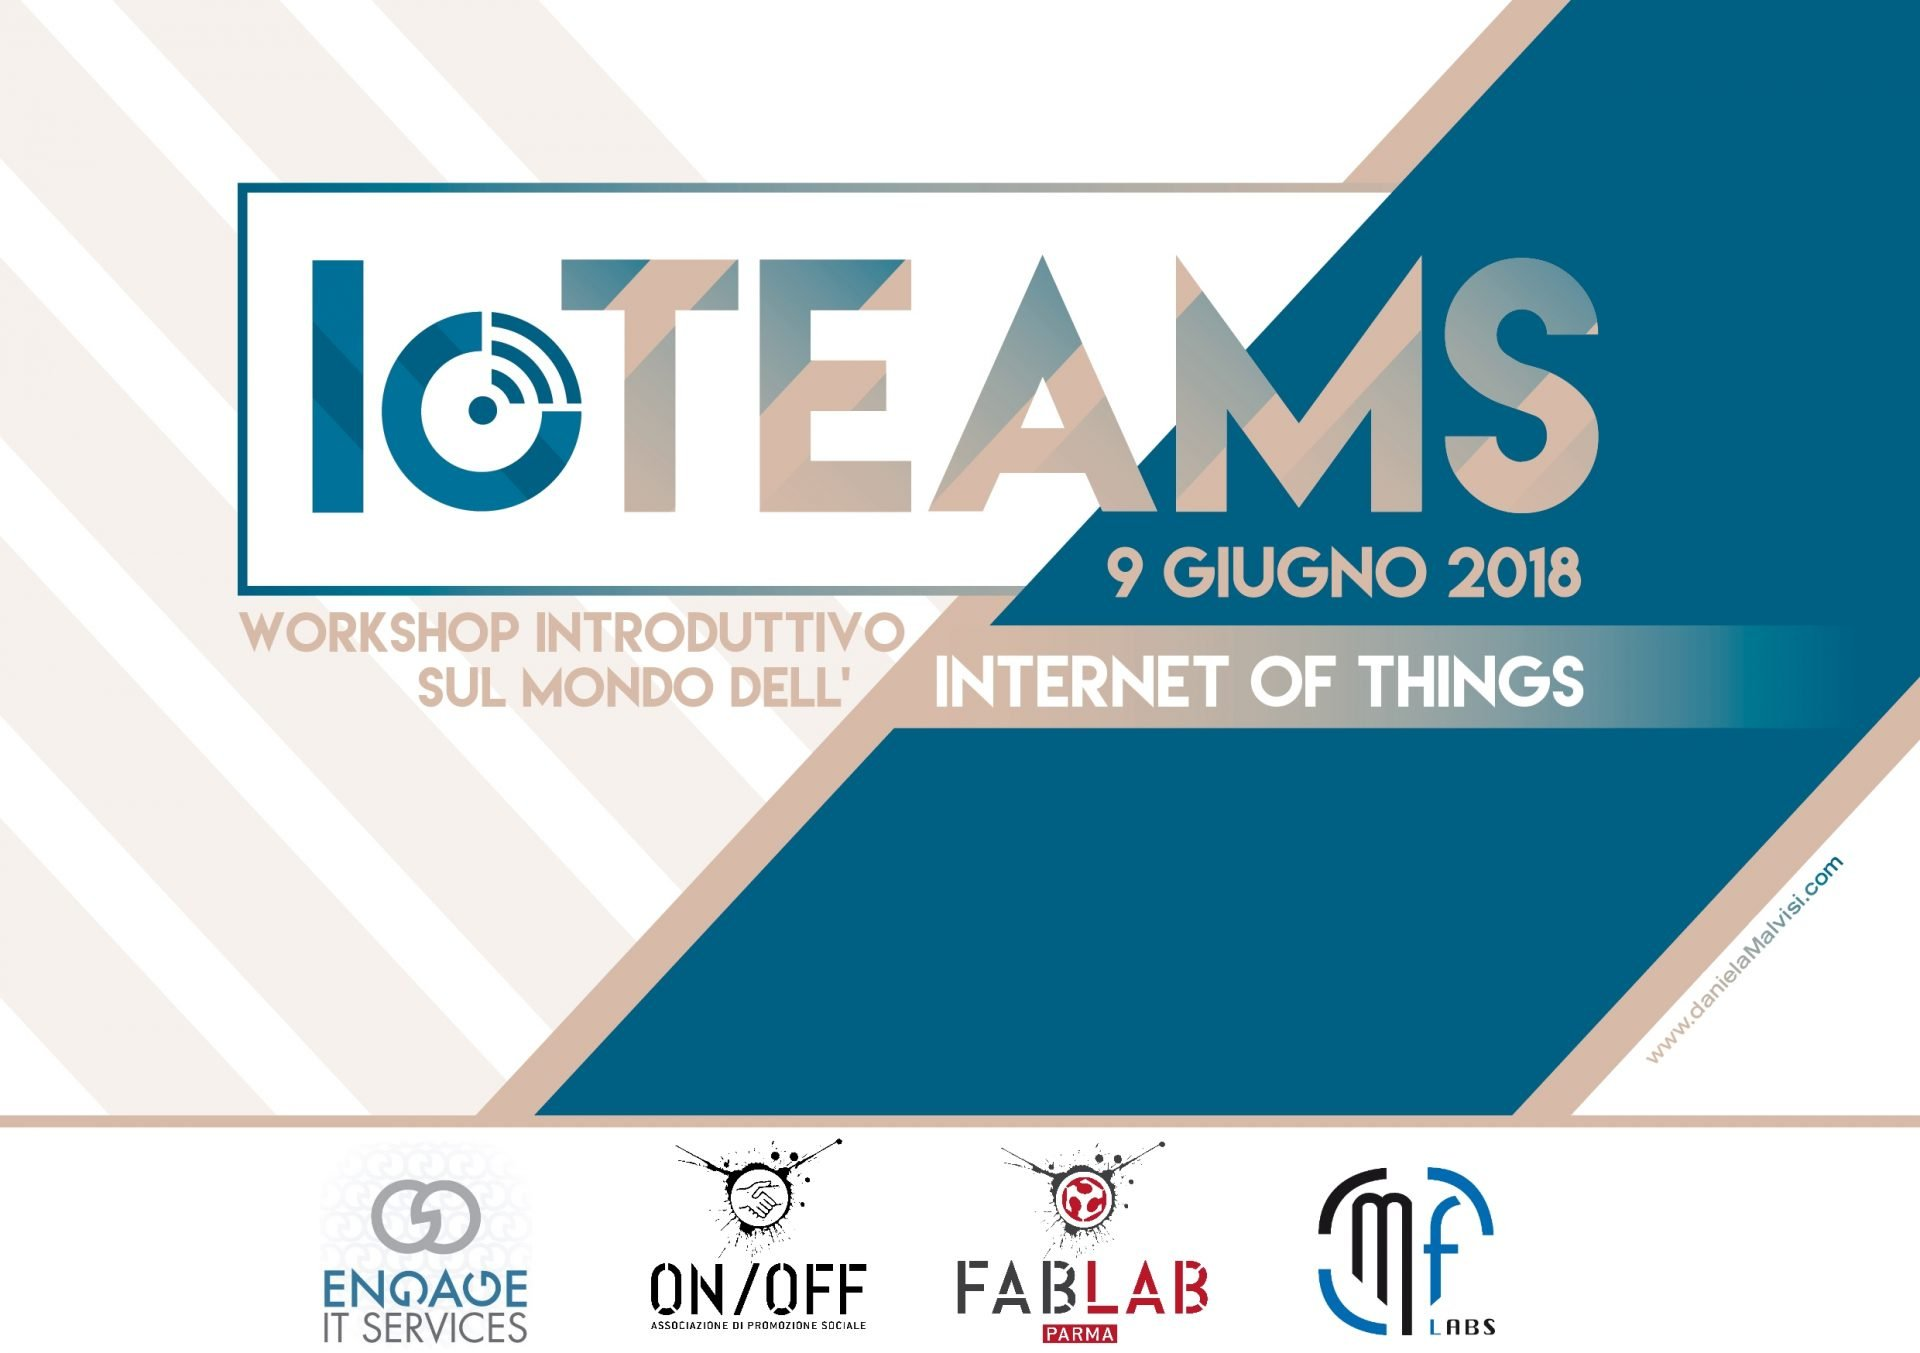 ioteams-full